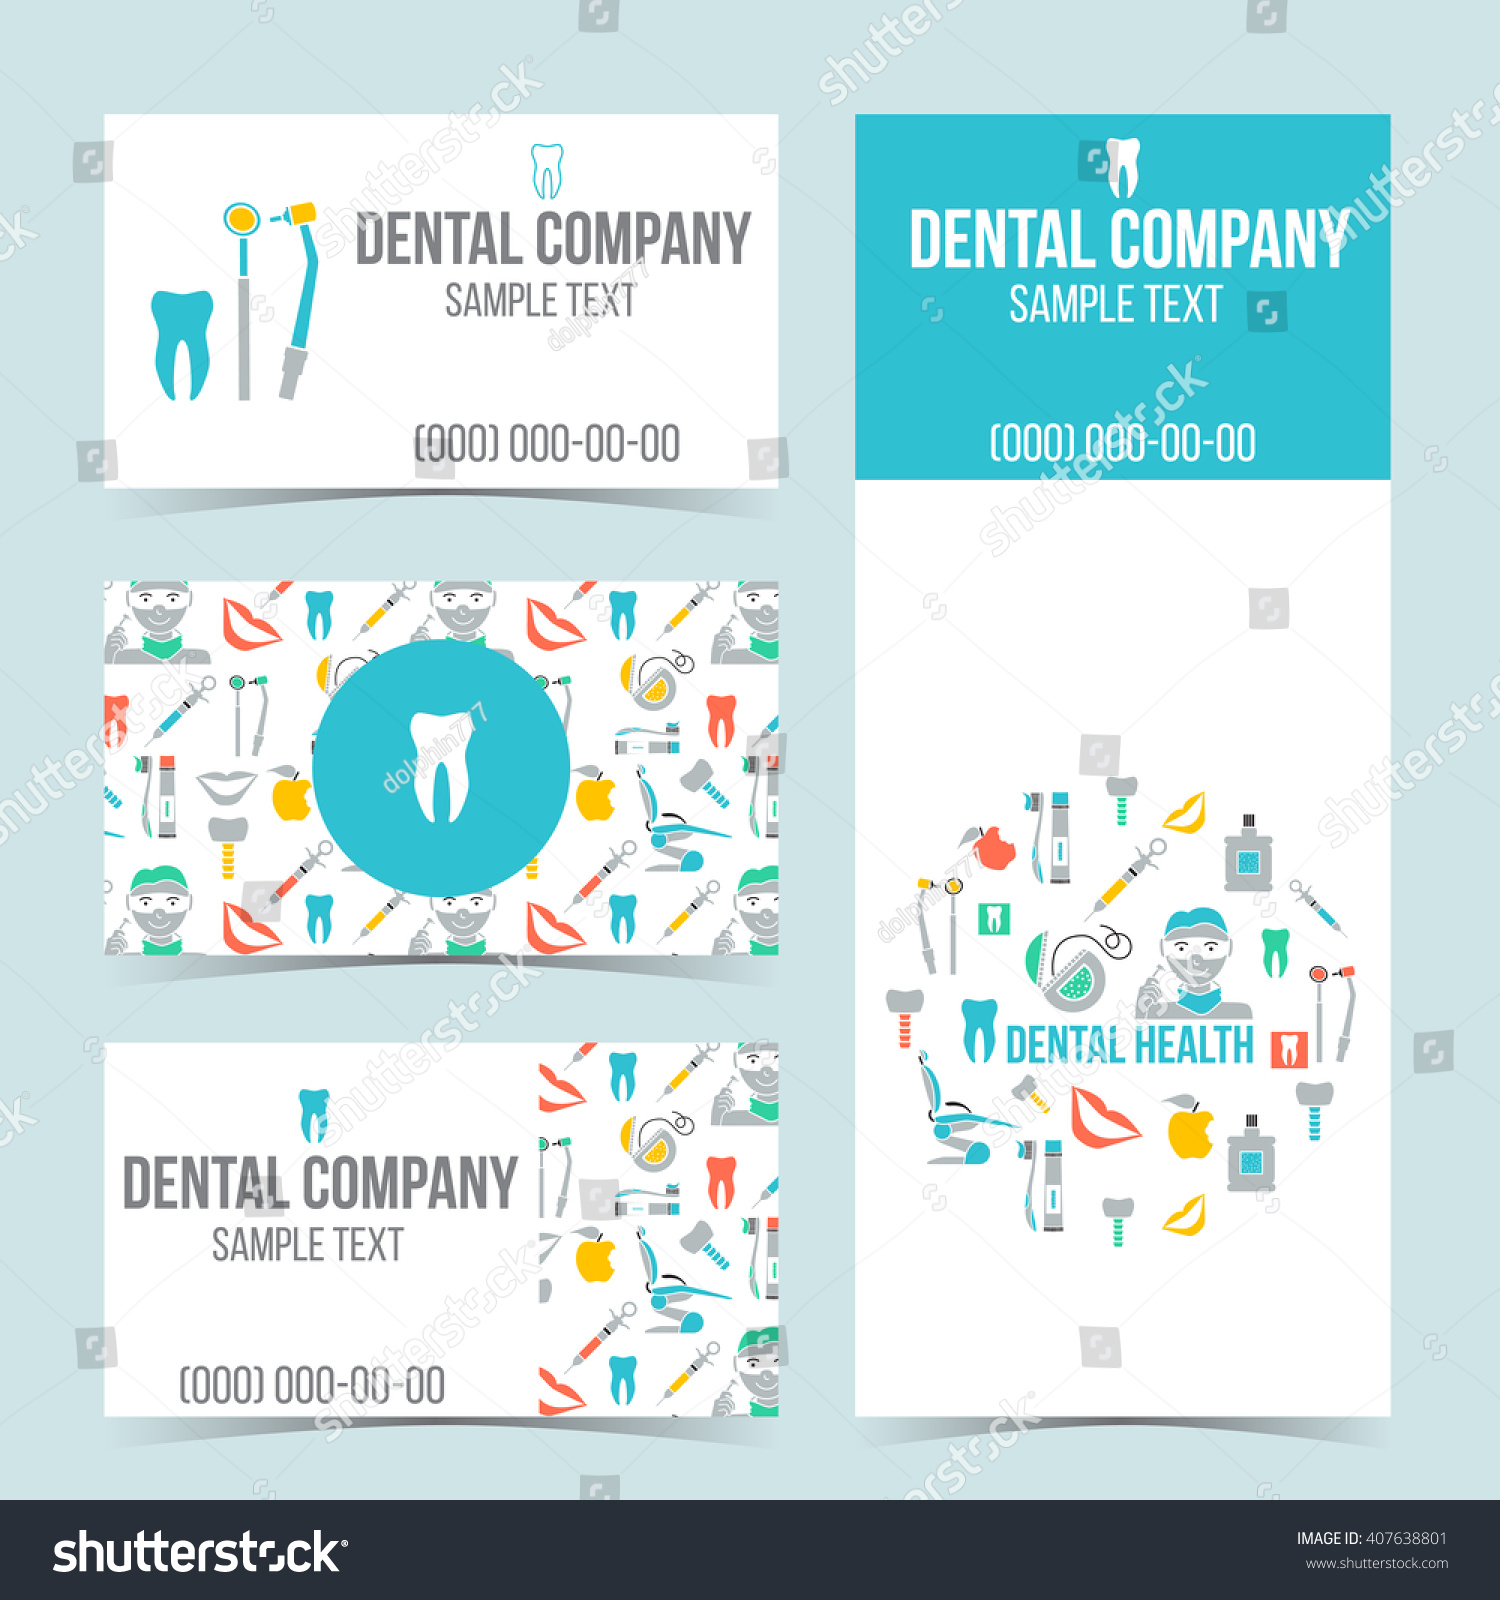 business flyers and cards ideas